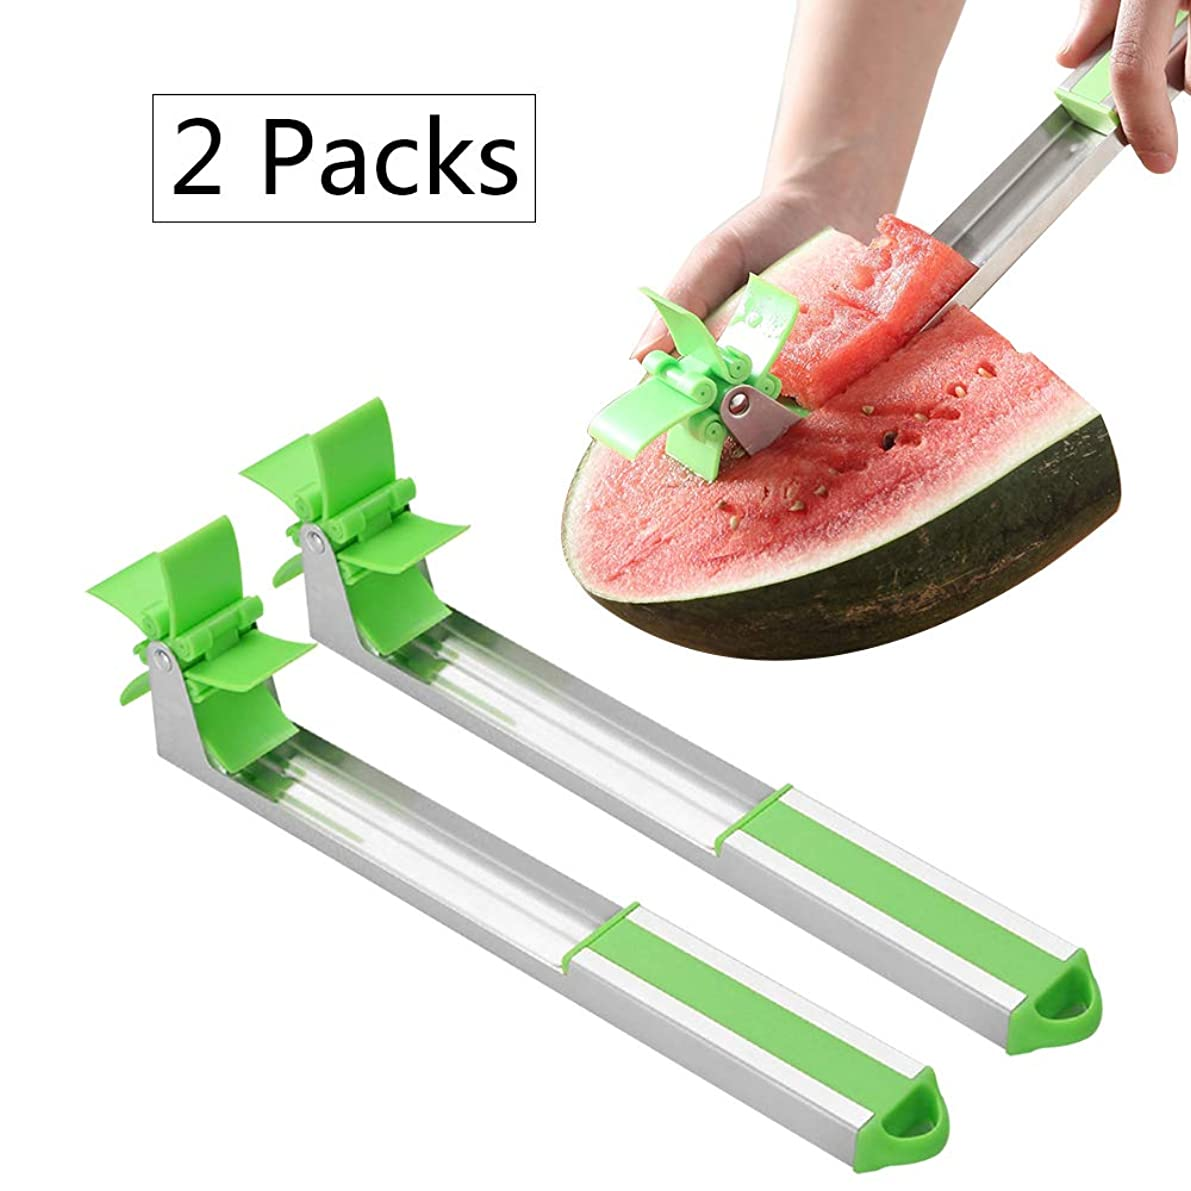 Deloky 2 Packs Watermelon Slicer Cutter-Windmill Watermelon Cutter Tongs, Stainless Steel Fruit MelonKitchen Gadget for Melon Cutter And Cantaloupe Scooper Fruit Service Tool